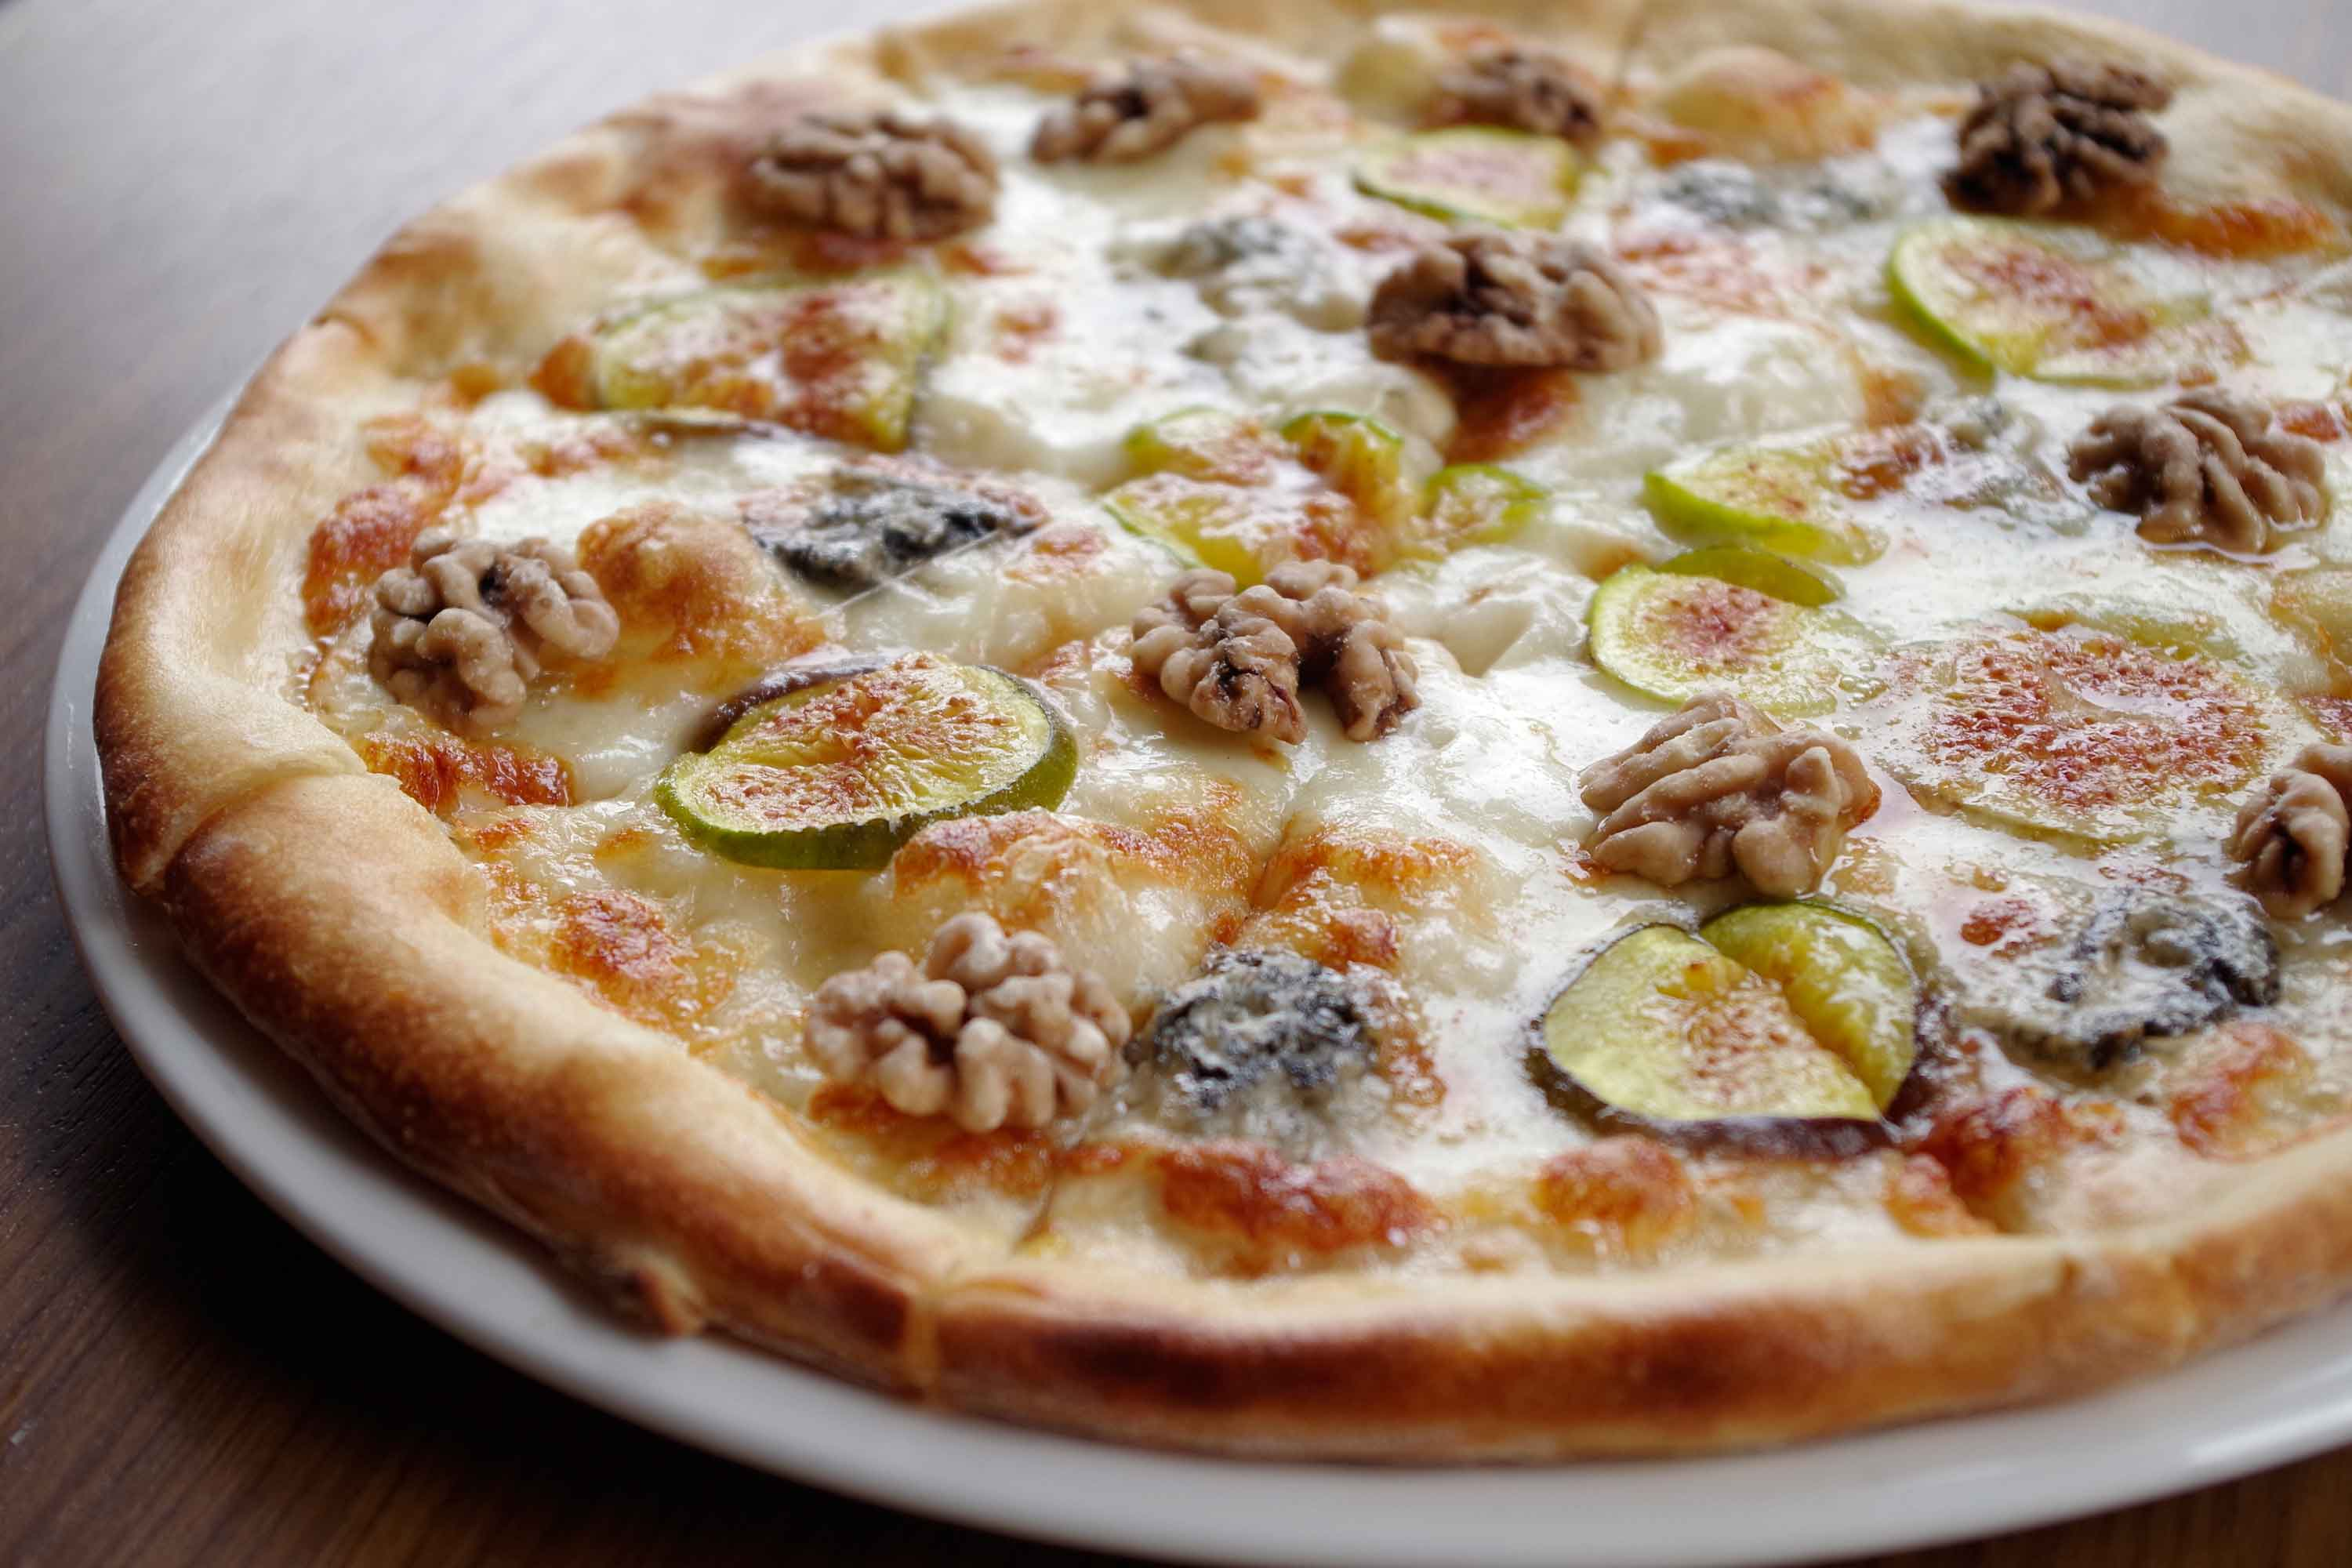 DiVino Patio - Pizza figs and walnuts